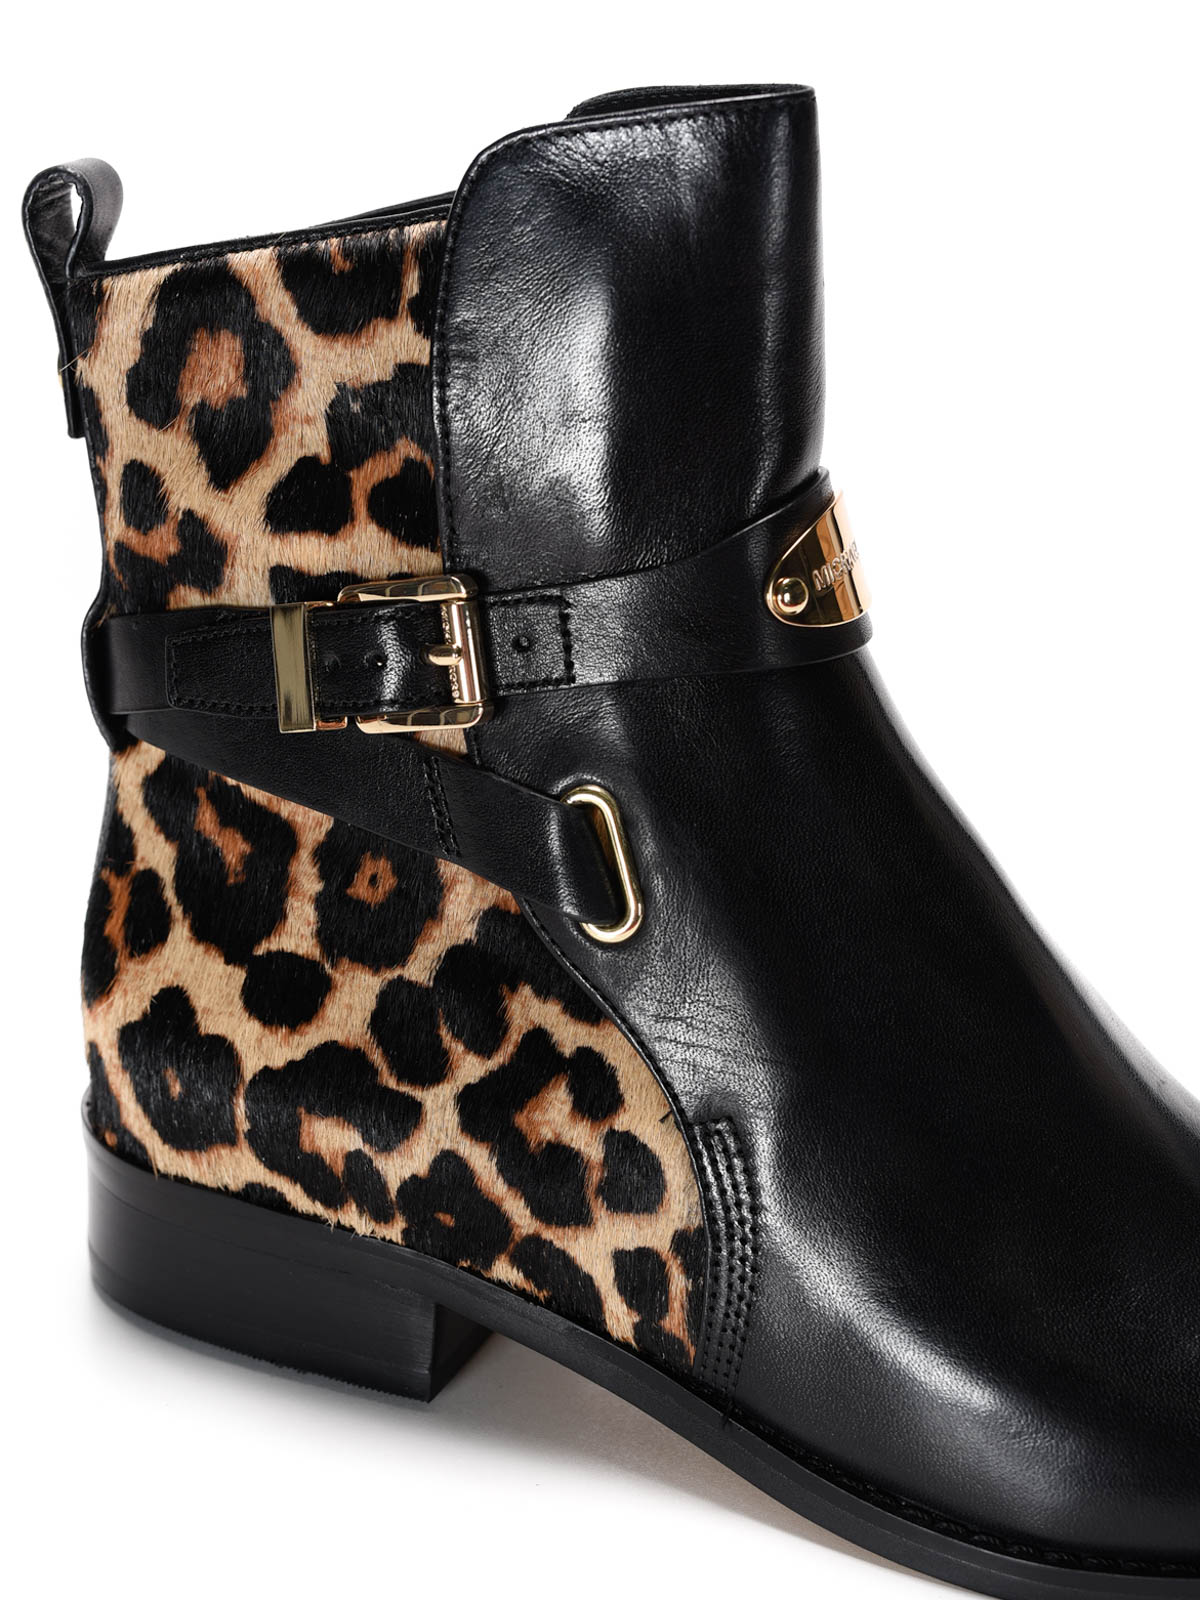 Michael Kors - Arley leather ankle